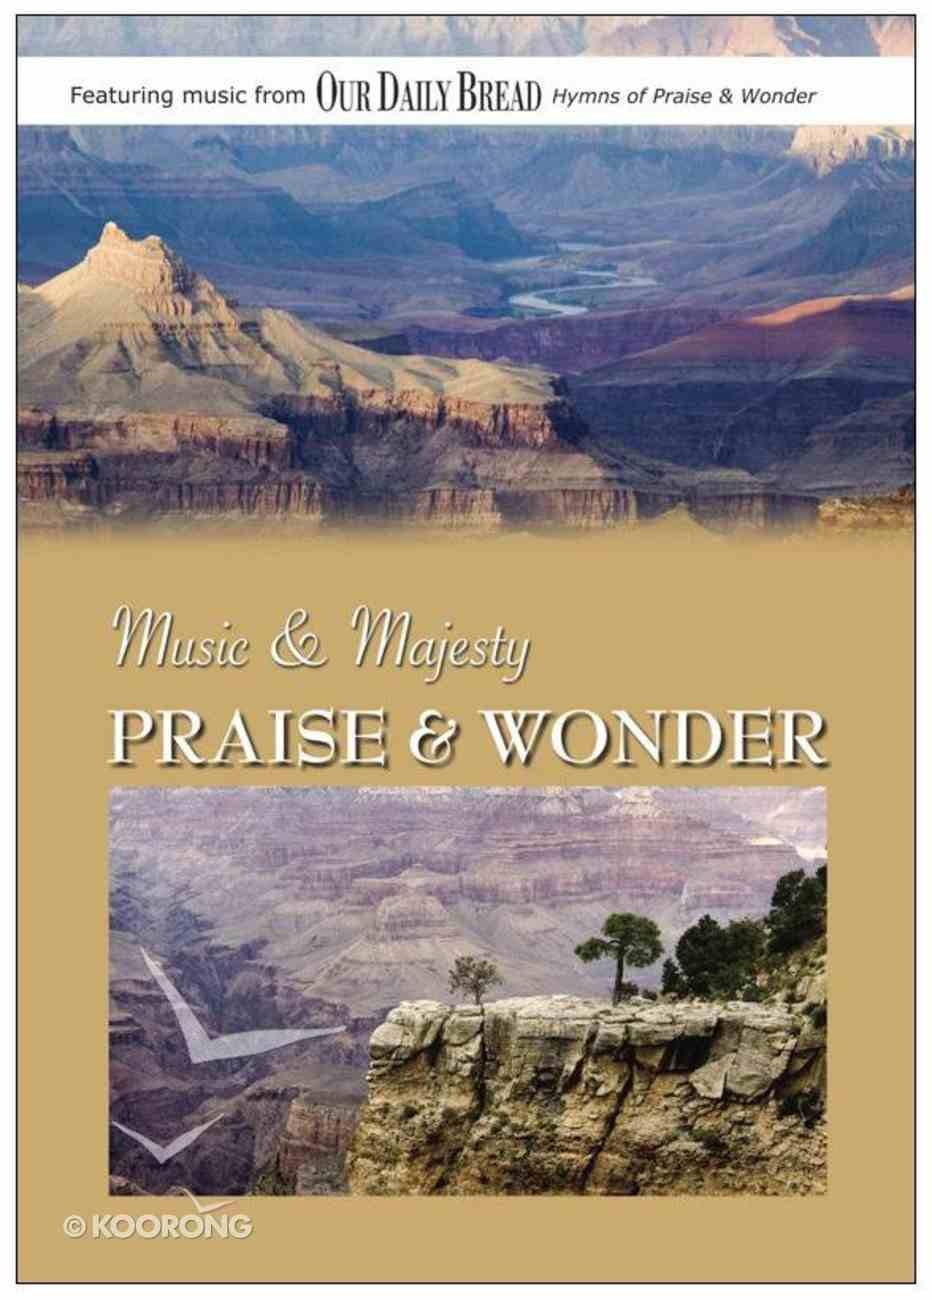 Music & Majesty: Praise & Wonder (Our Daily Bread Series) DVD